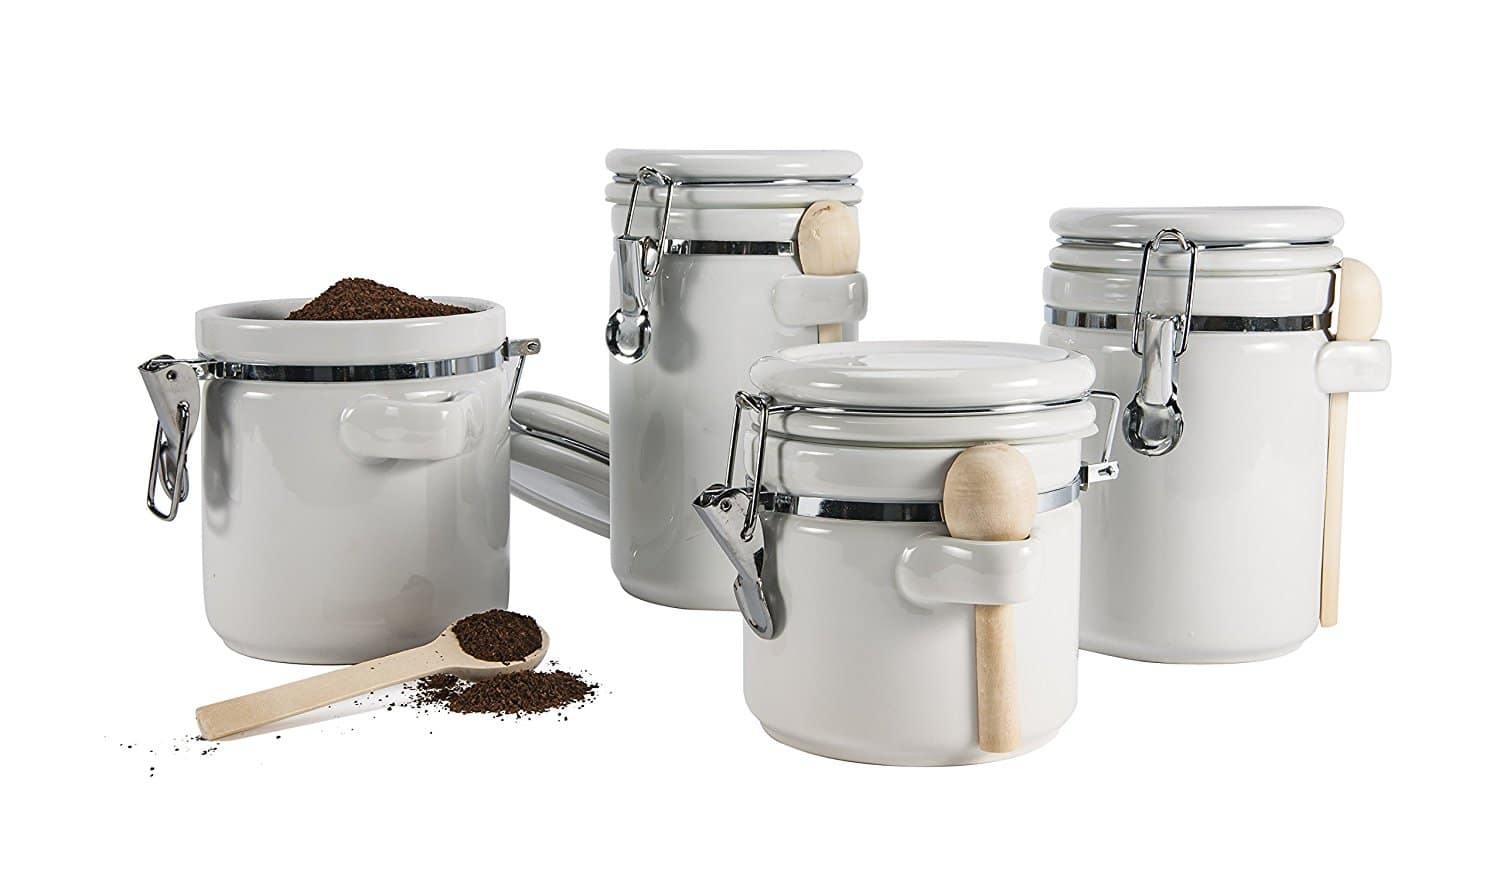 4-Pc Anchor Hocking Ceramic Canister Set w/ Clamp Top Lid & Wooden Spoon (White)  $11.25 + Free Store Pickup